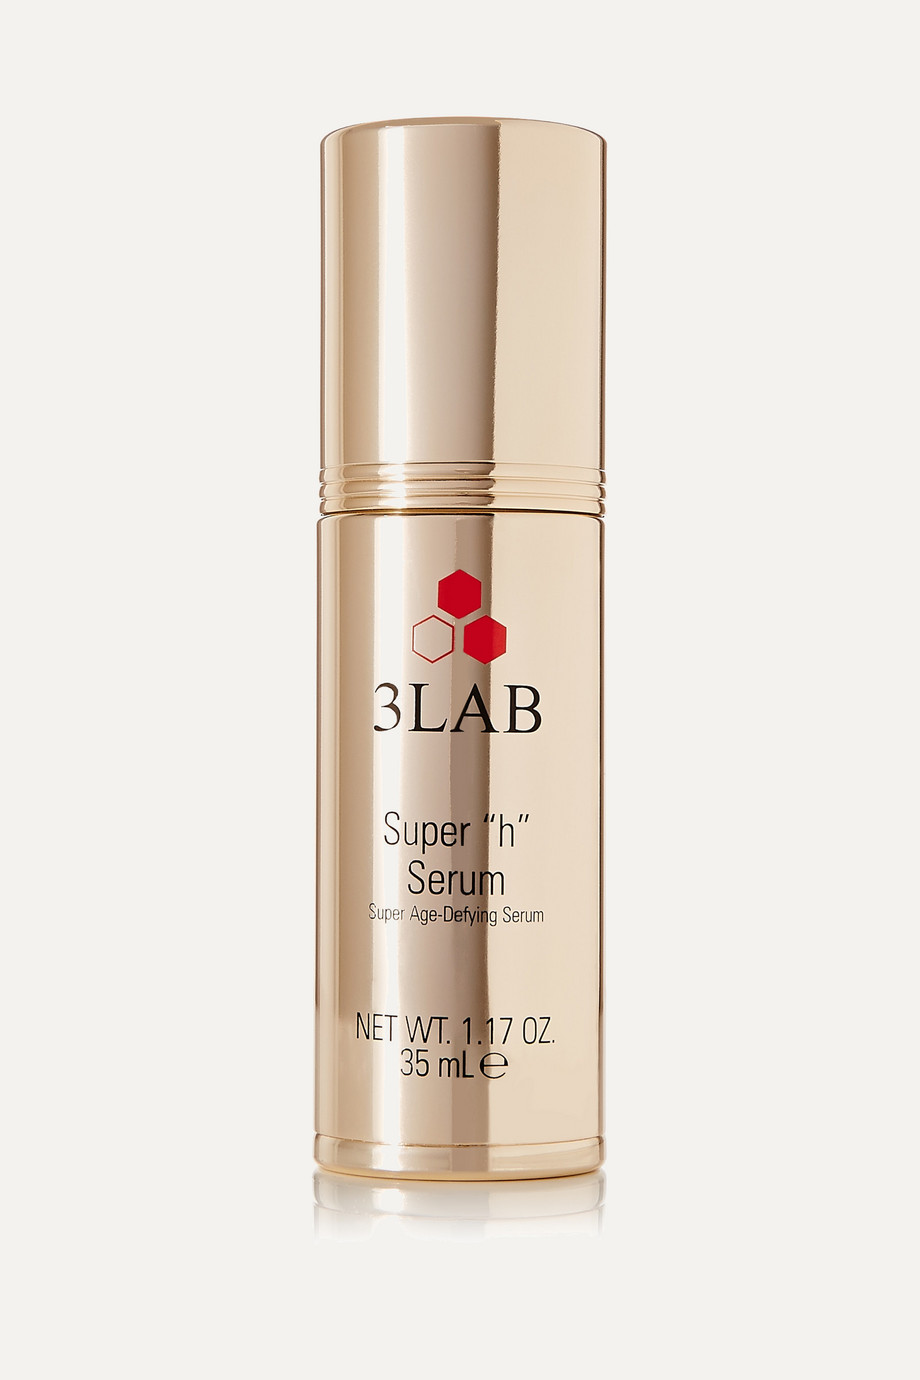 3LAB Super H Serum, 35ml